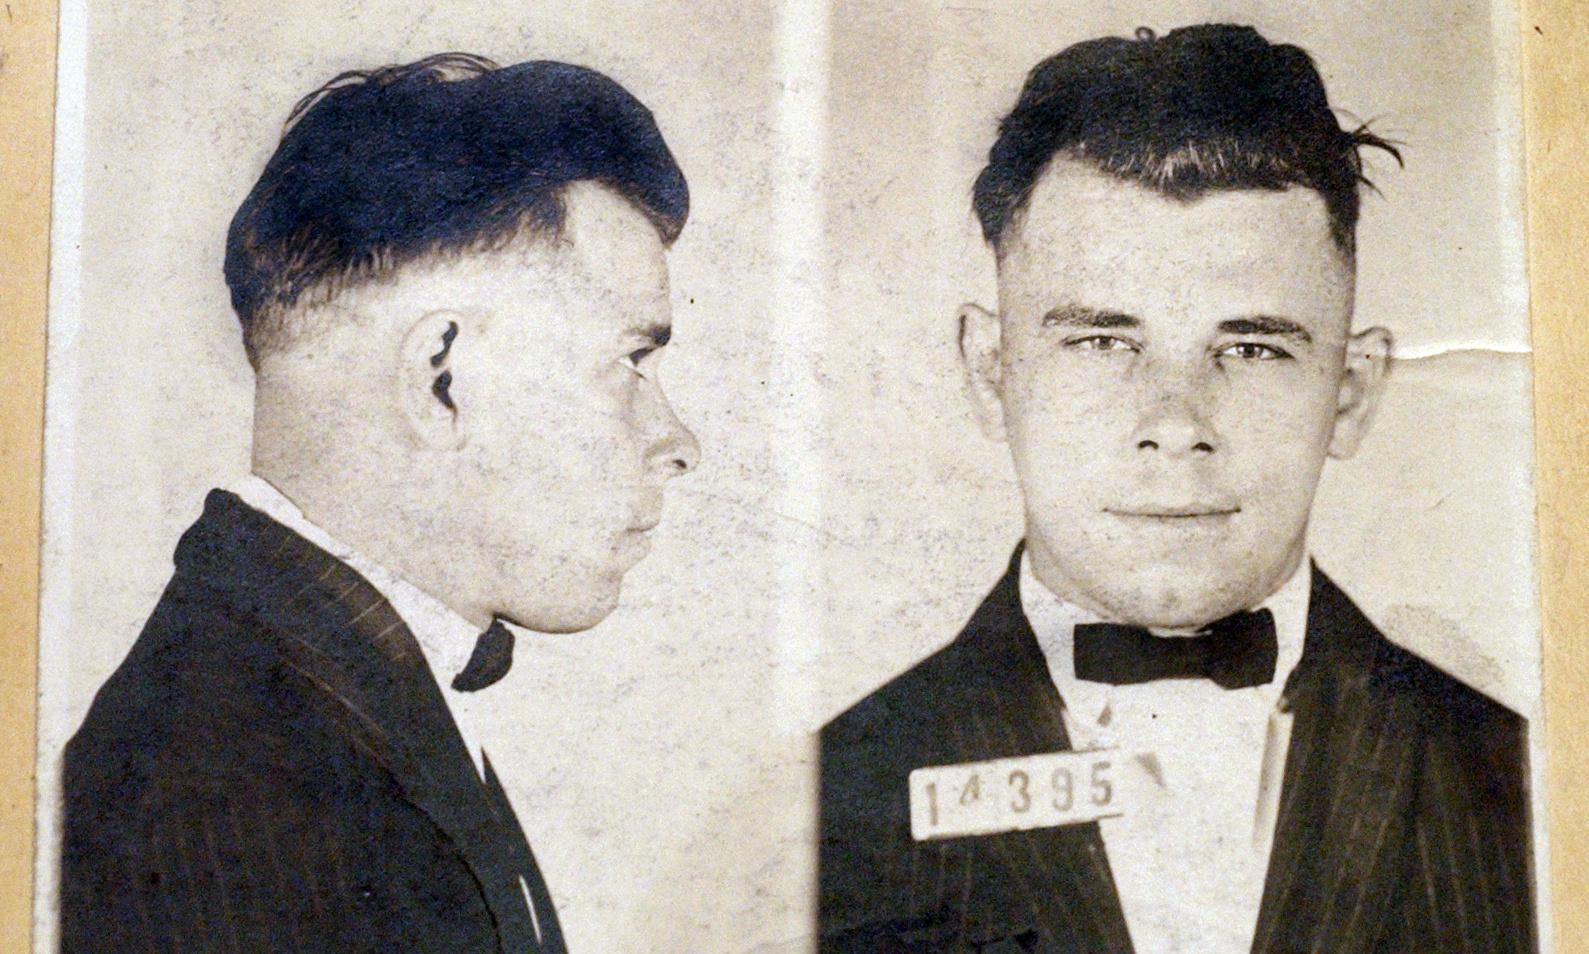 Body of 1930s gangster John Dillinger to be exhumed at family's request